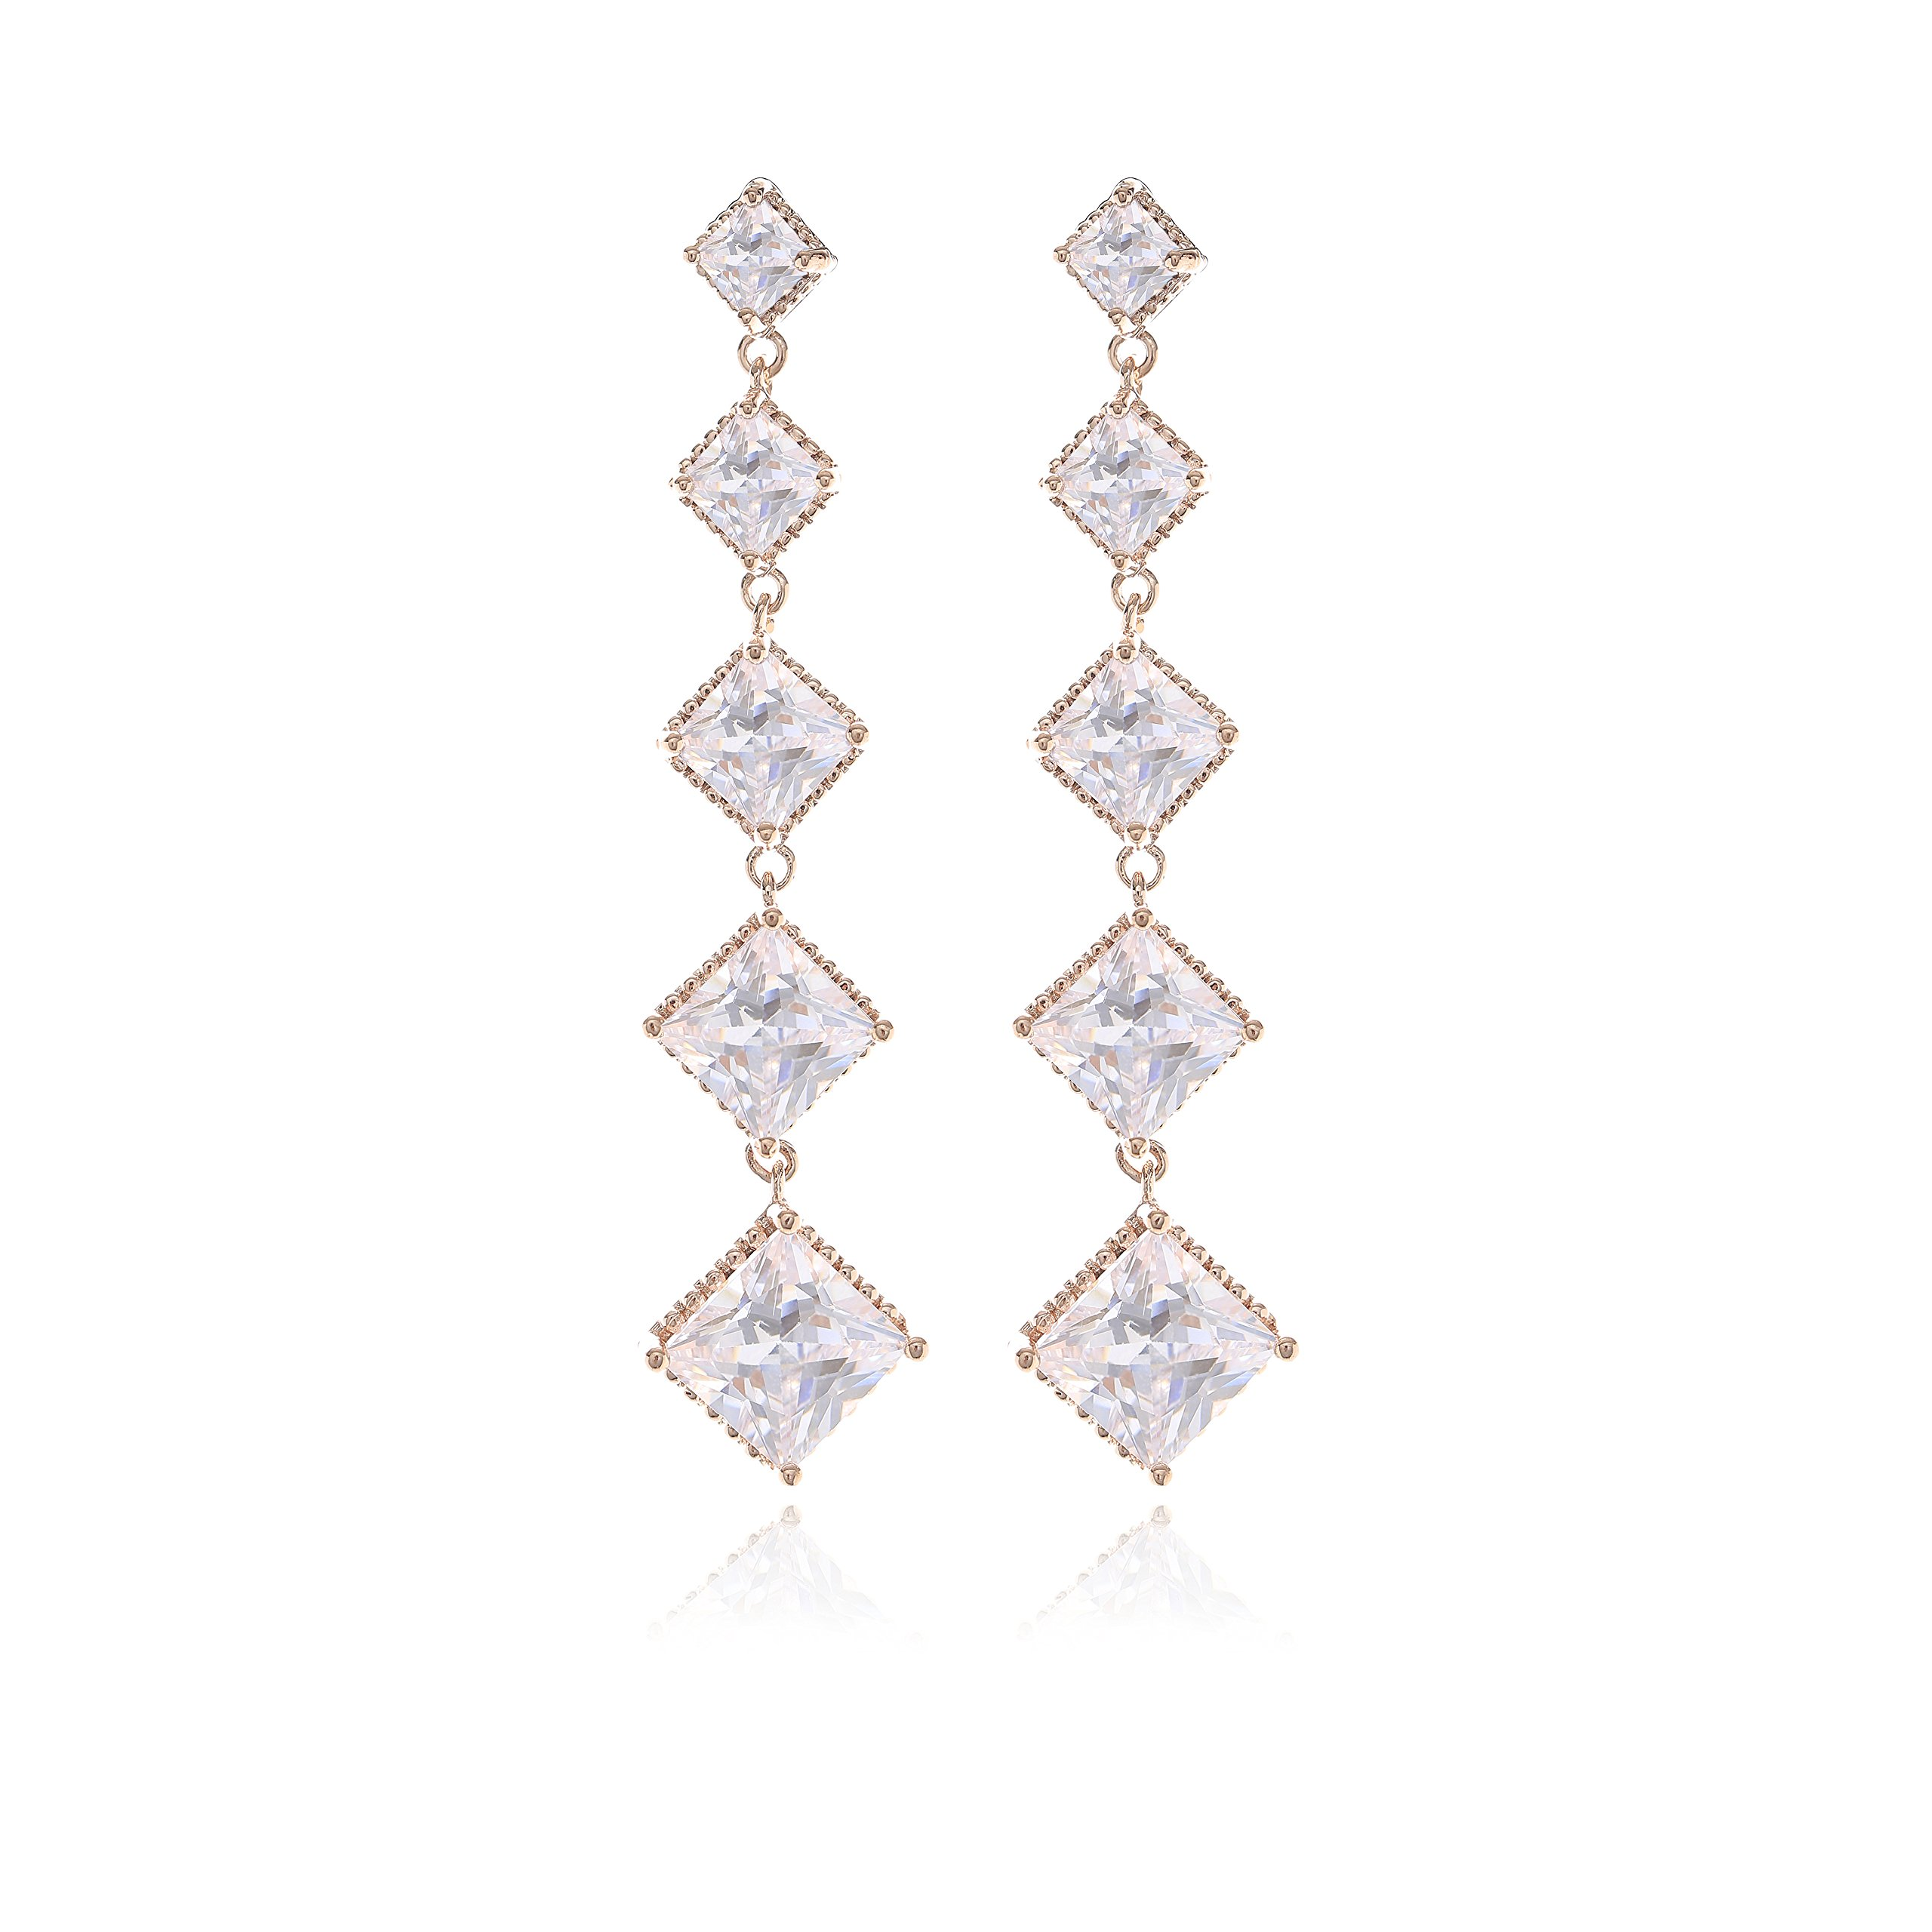 Elegant Square Shape Dangle Earrings - 18K Rose Gold Crystal Cubic Zirconia Stud Earrings for Party, Shopping, Travel Best Gifts